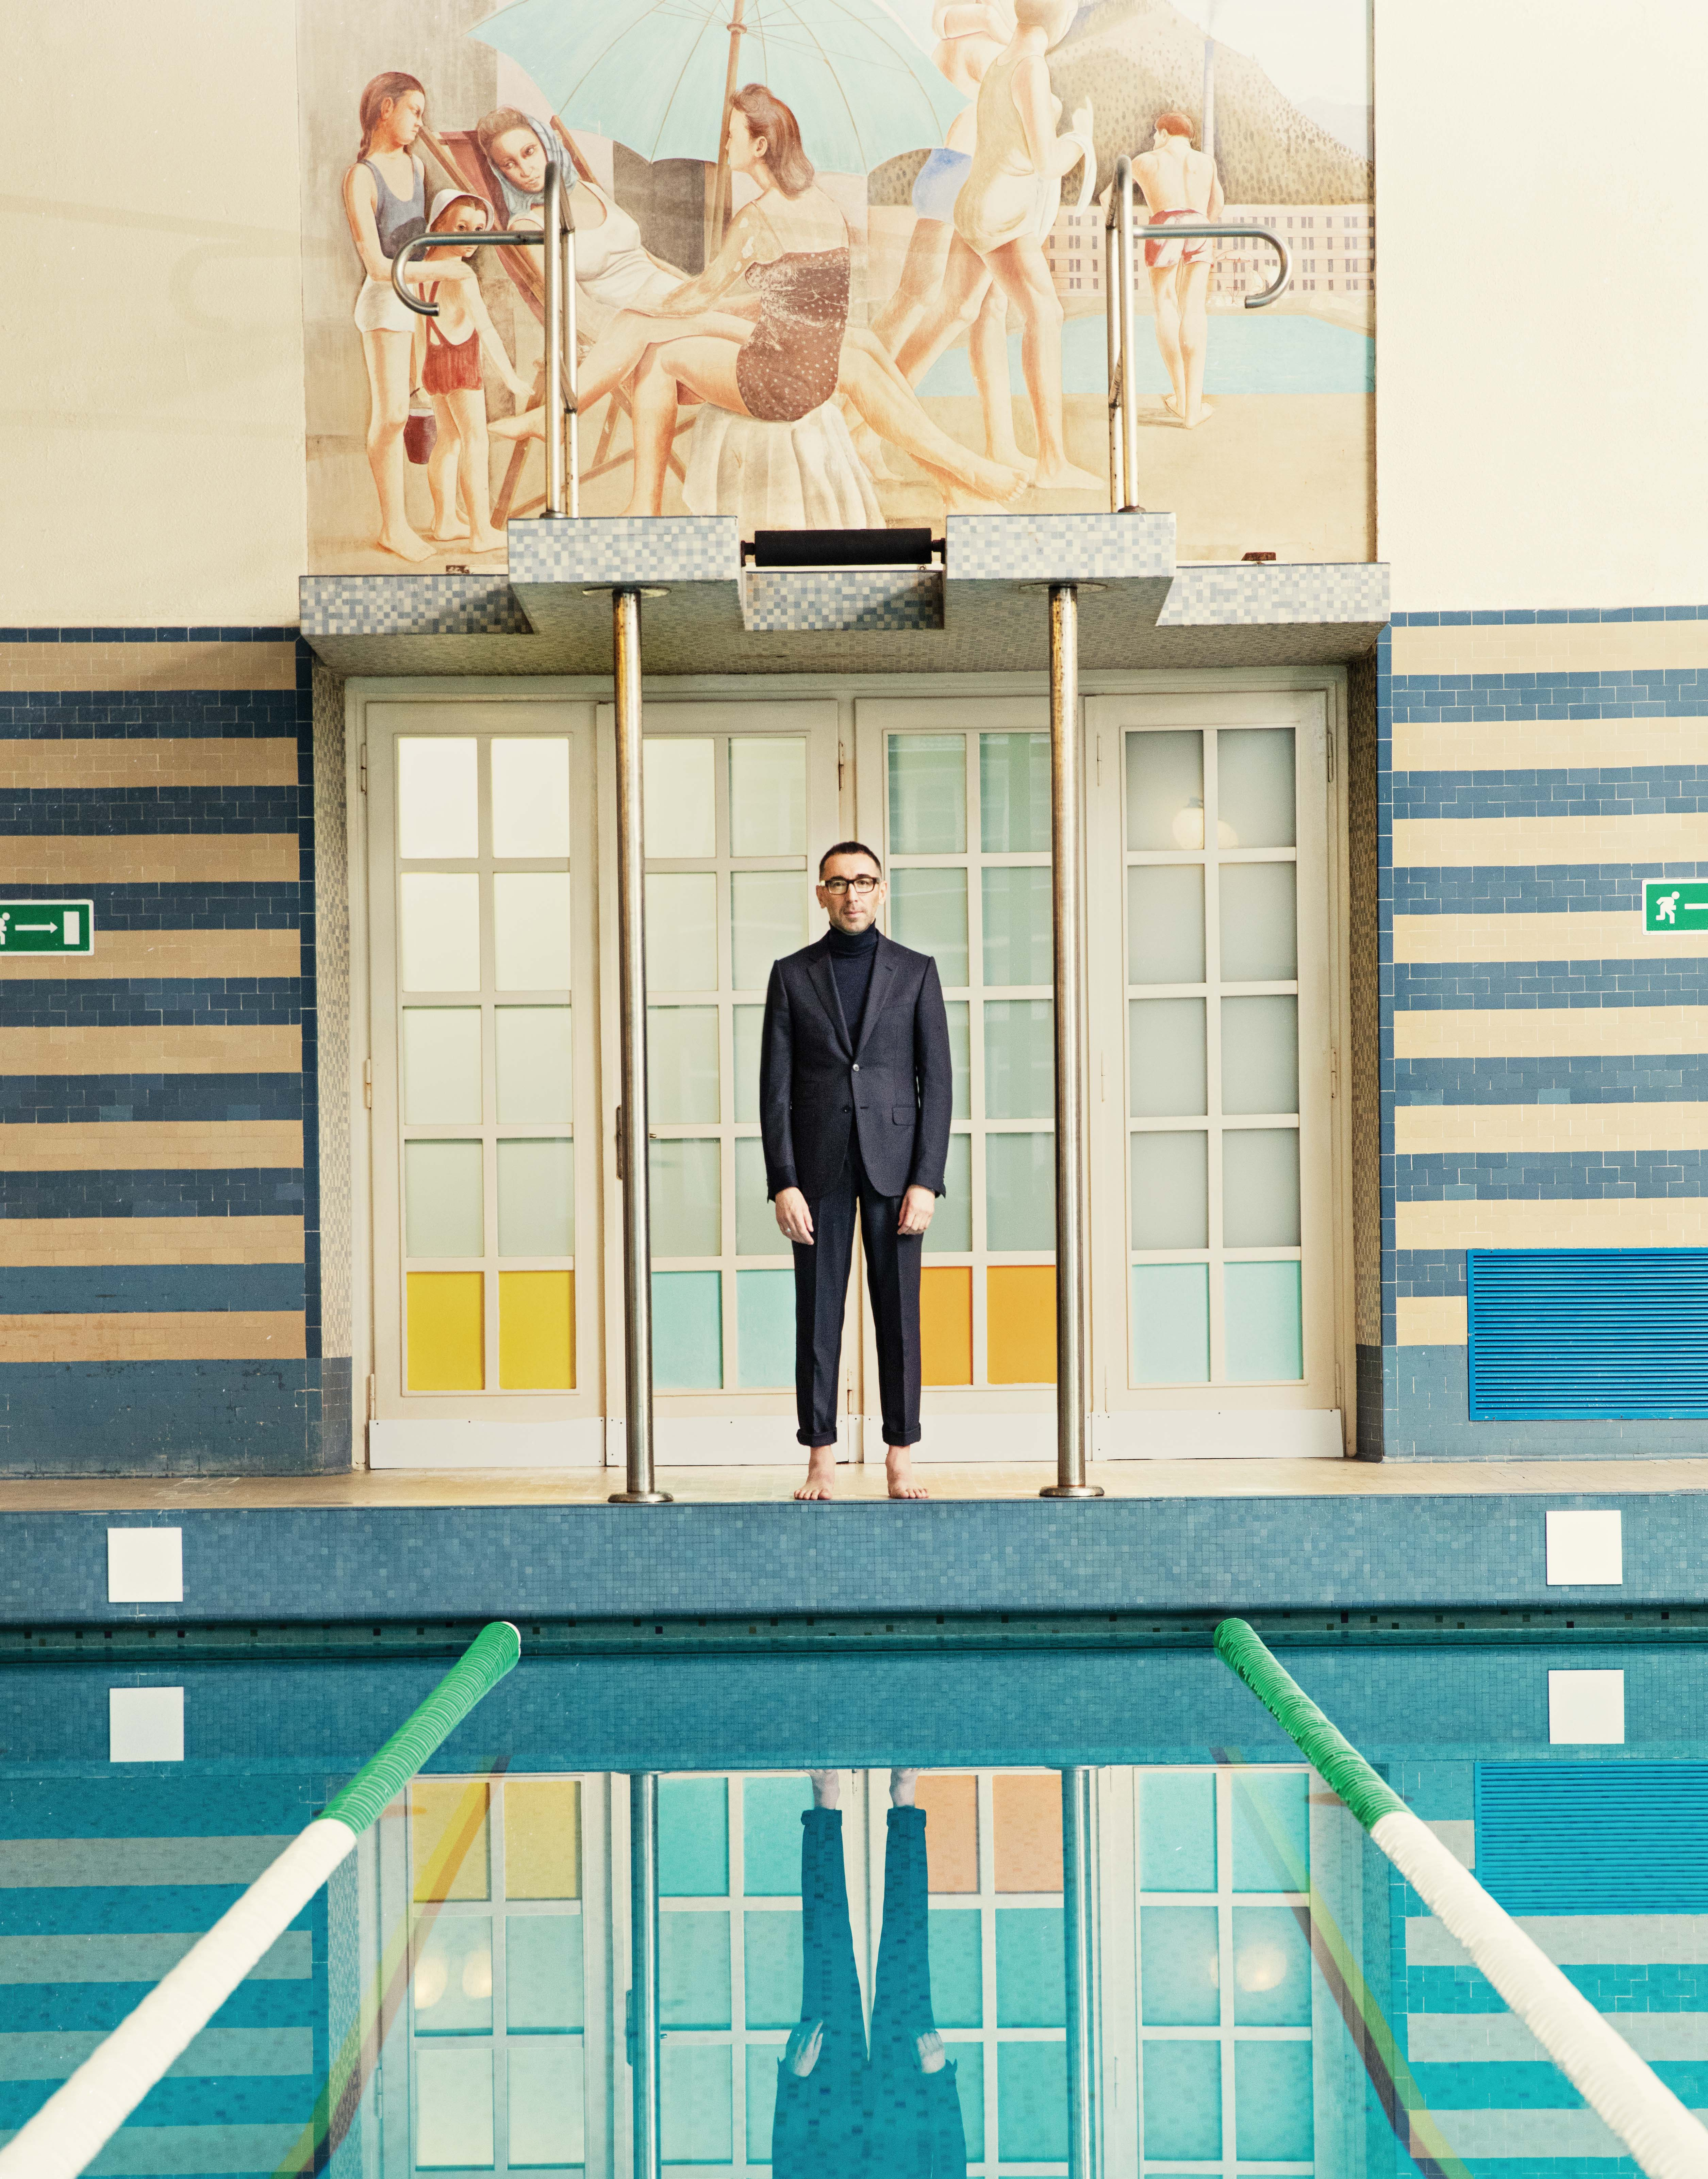 alessandro Sartori photographed at the indoor swimming pool built in the late Thirties as part of the philanthropic vision of Ermenegildo Zegna, who, besides striving to produce impeccable fabrics, strove to better the quality of life of the community of Trivero. It's the pool where alessandro learned to swim at age four.